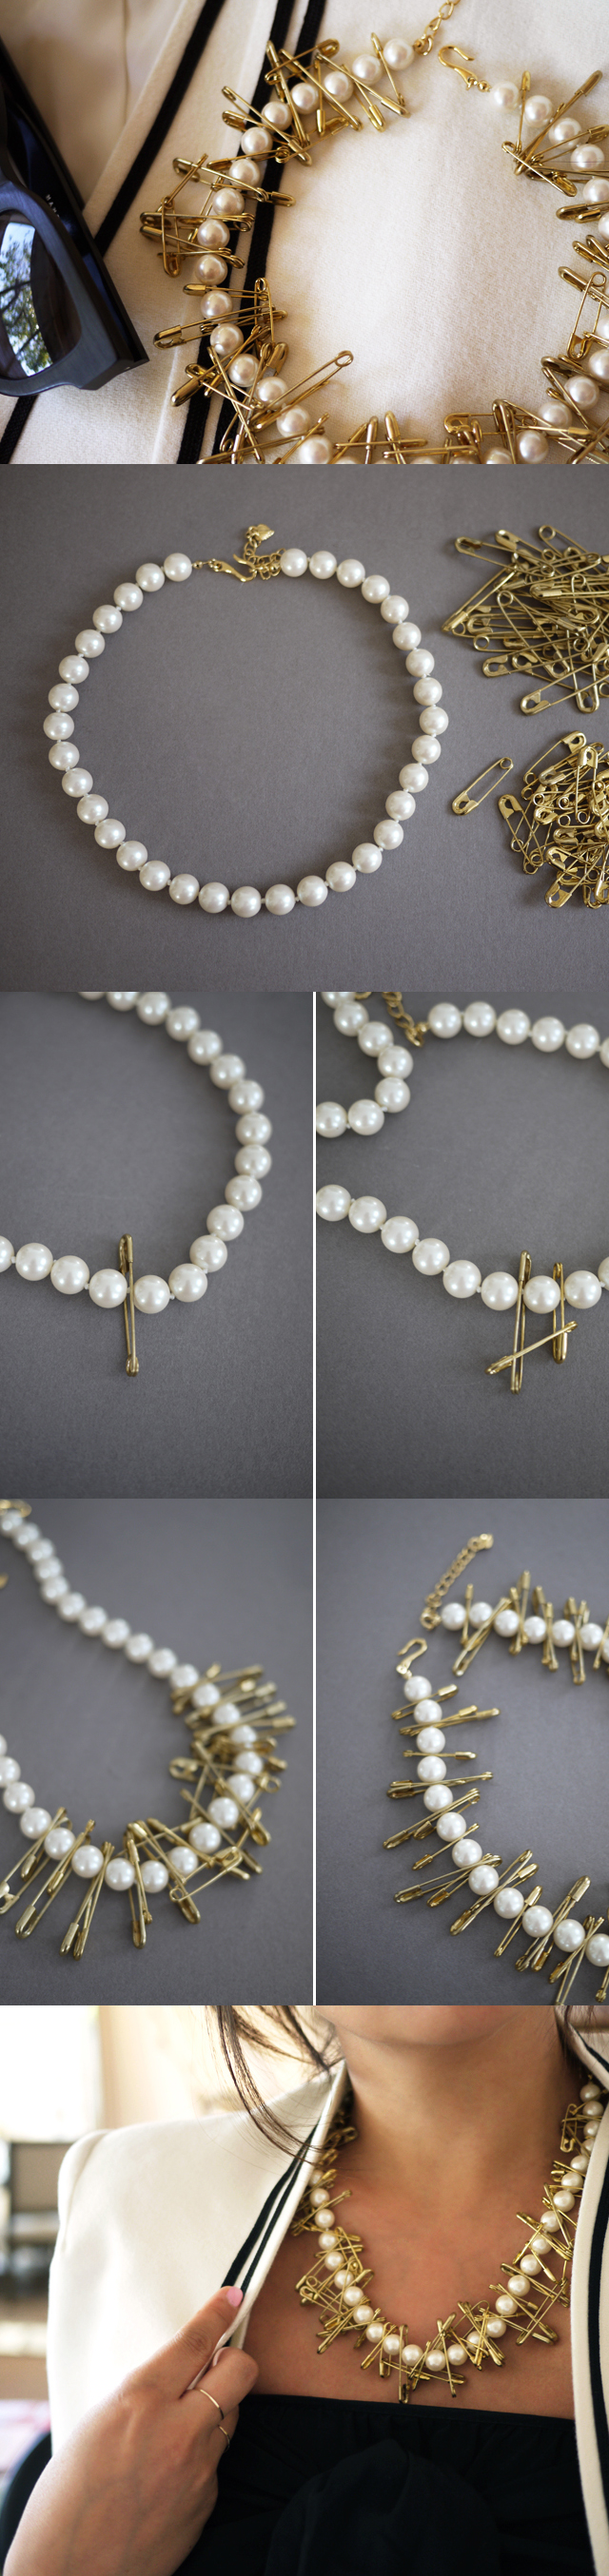 DIY Pearl and Safety Pin Necklace Diy fashion jewelry